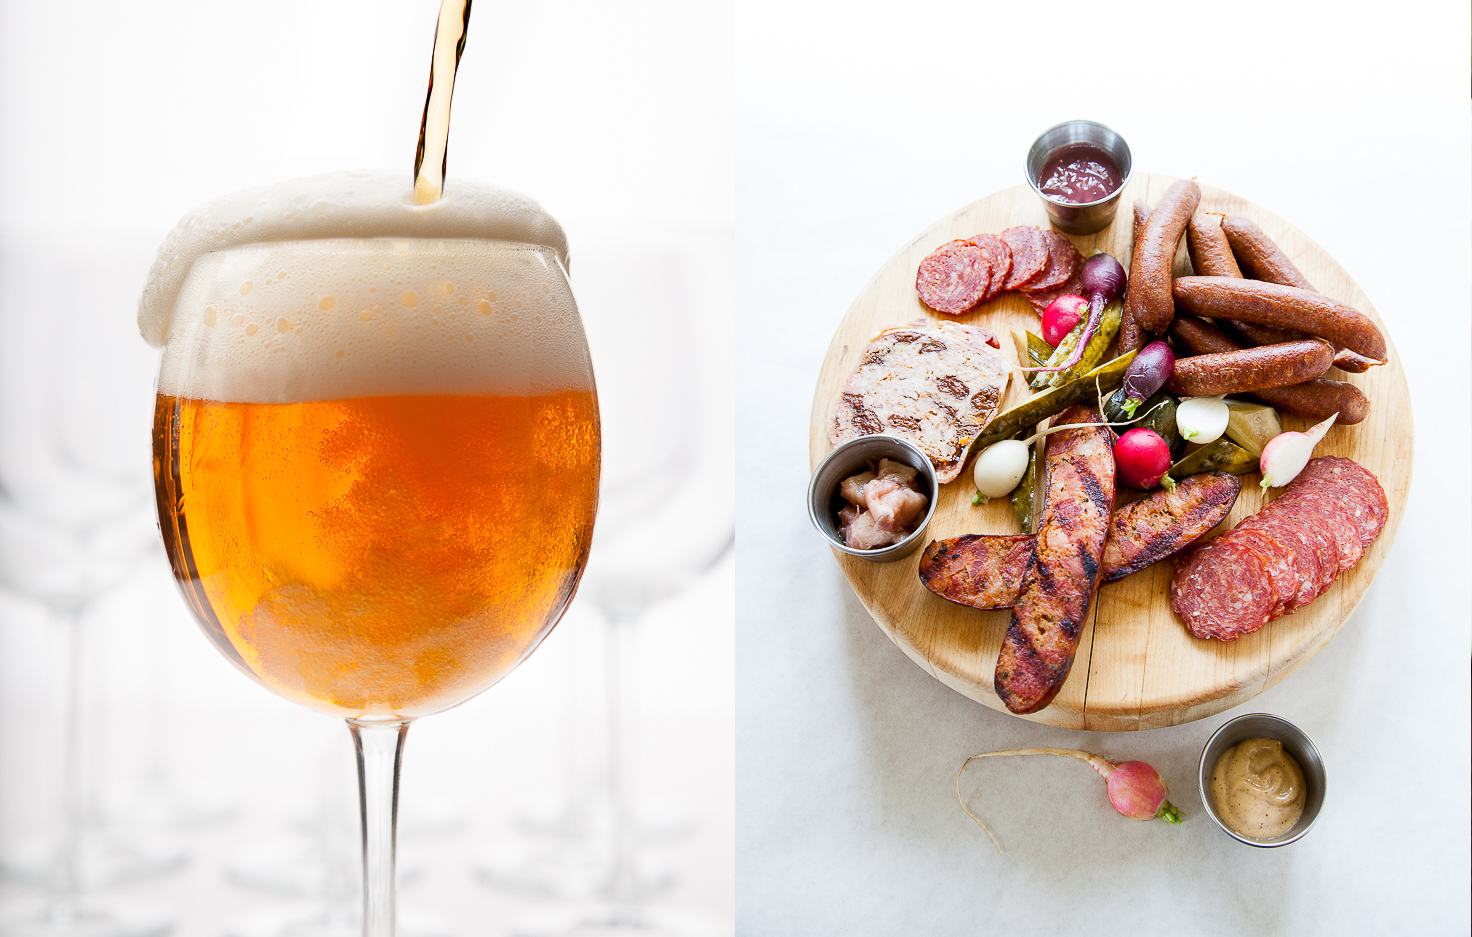 Beer in a Wine Glass | Tray of Meat